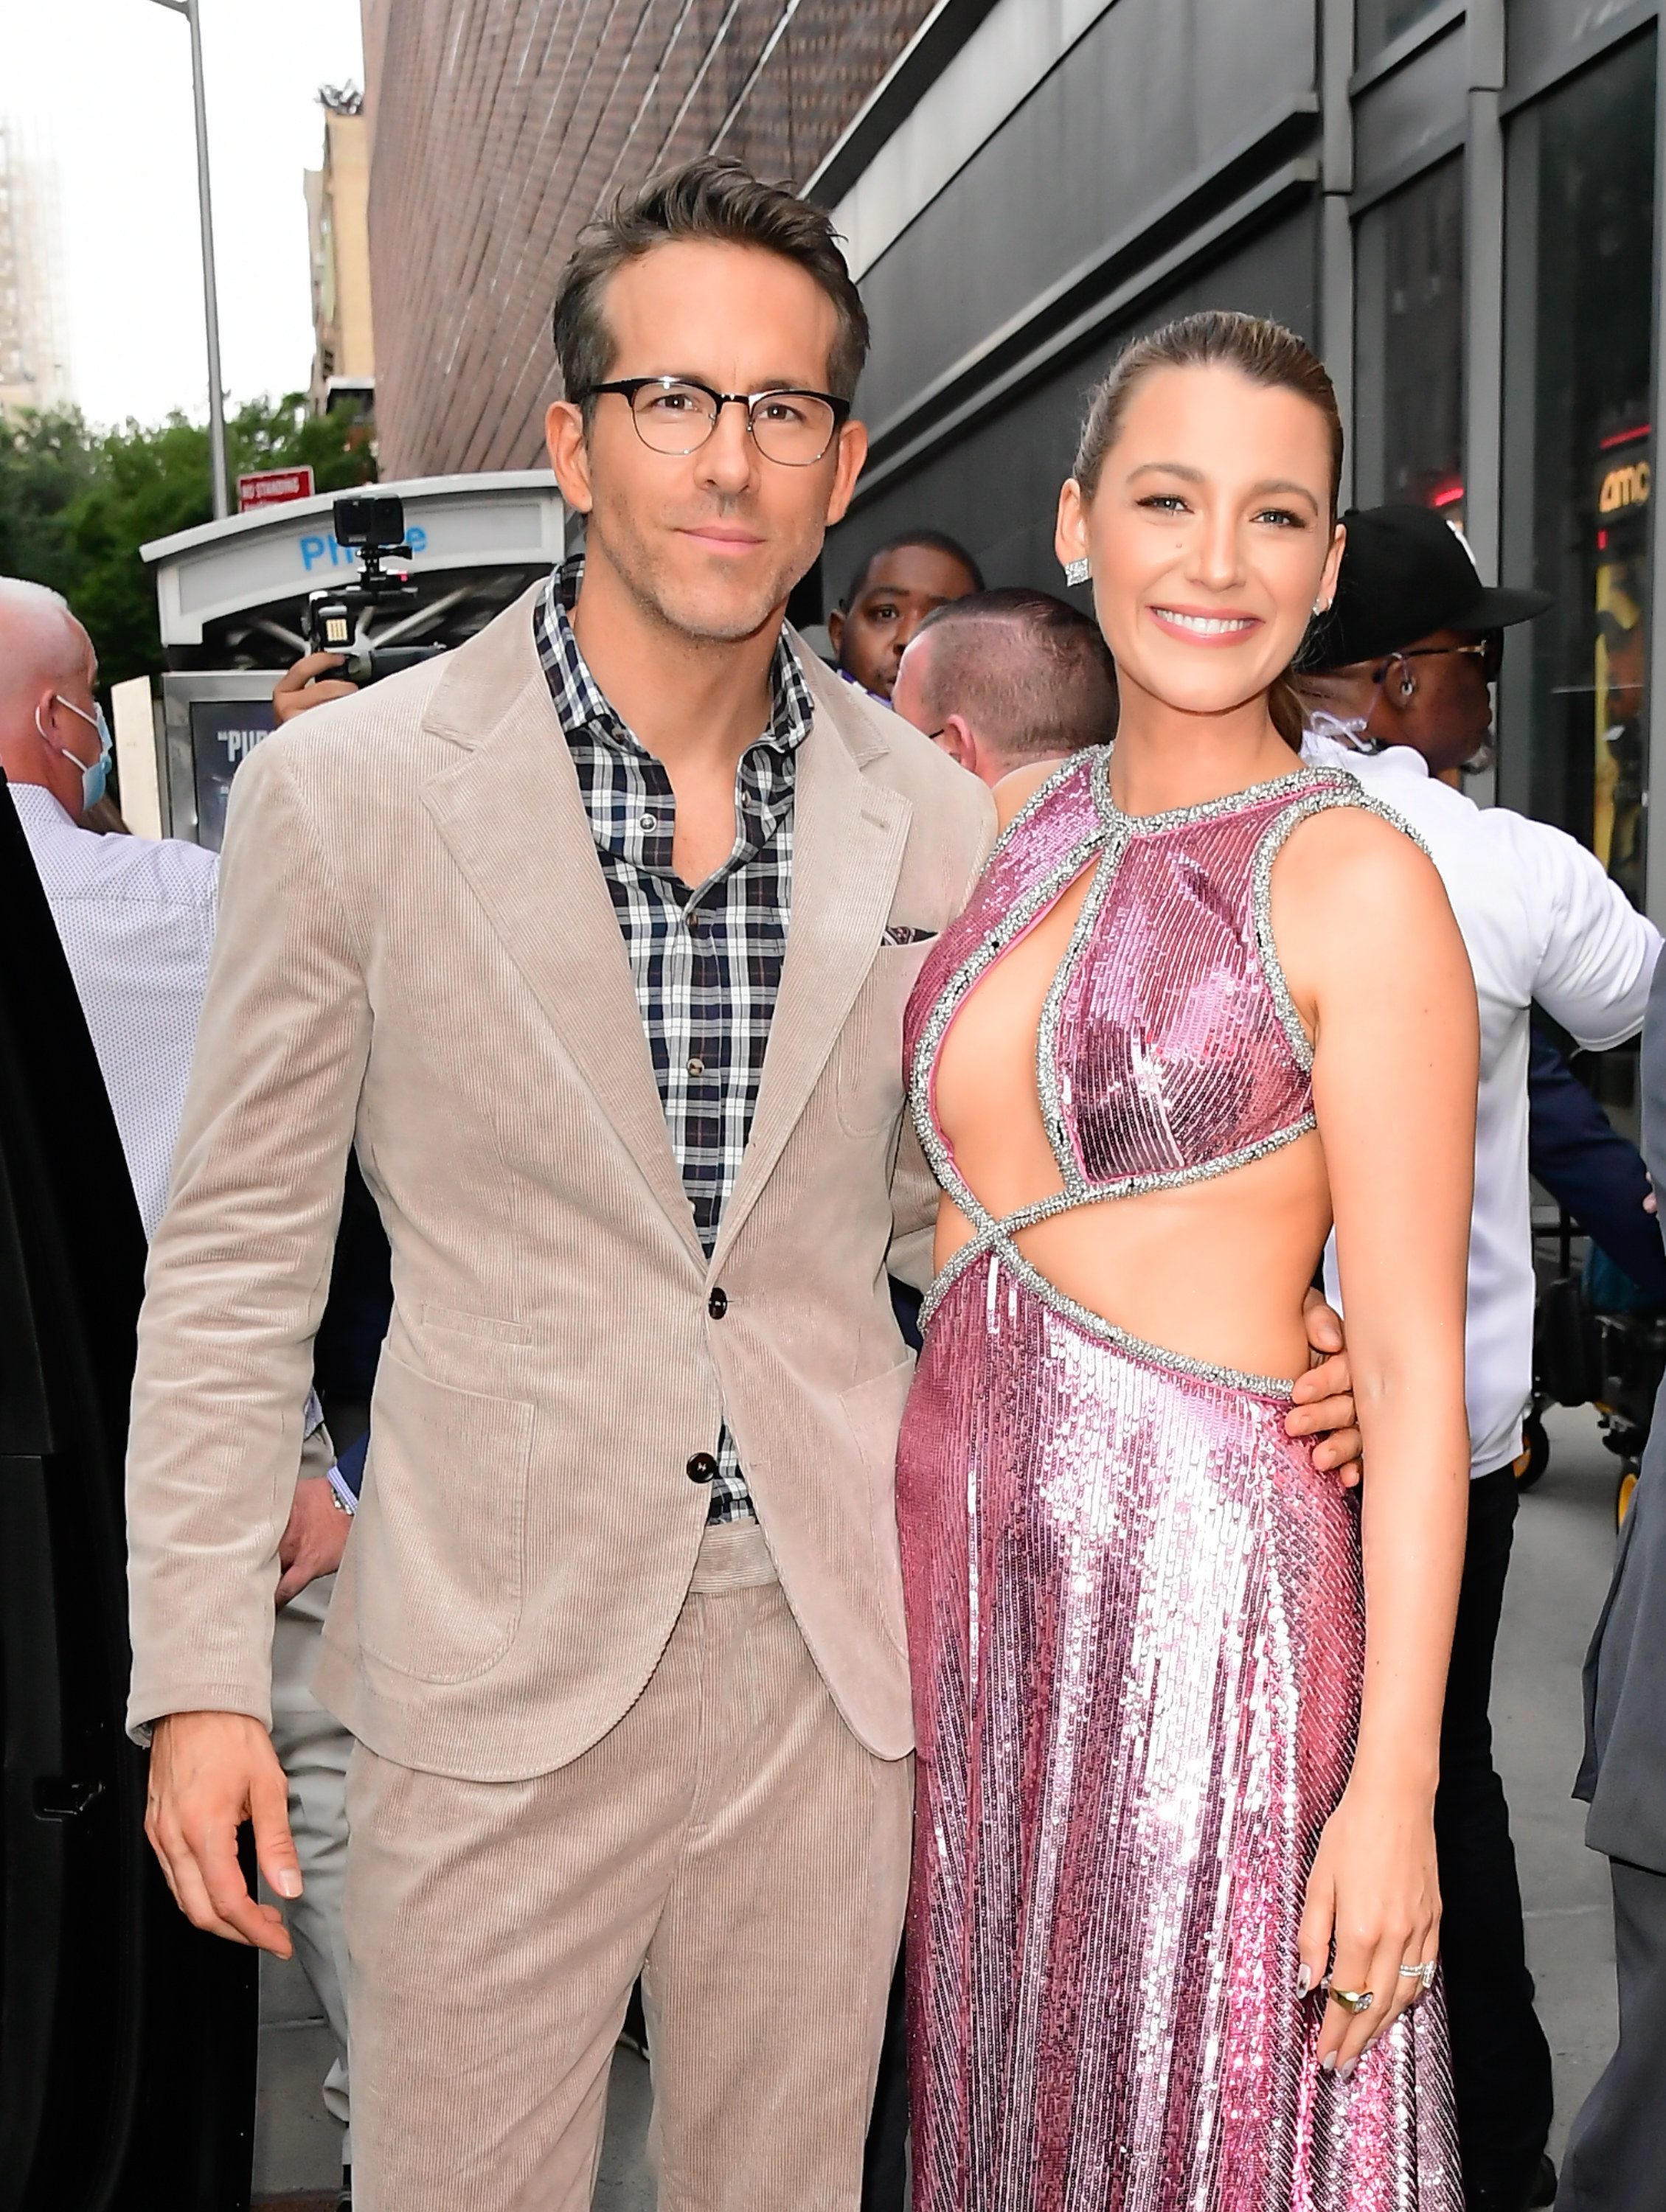 Ryan Reynolds and Blake Lively are photographed at the premiere